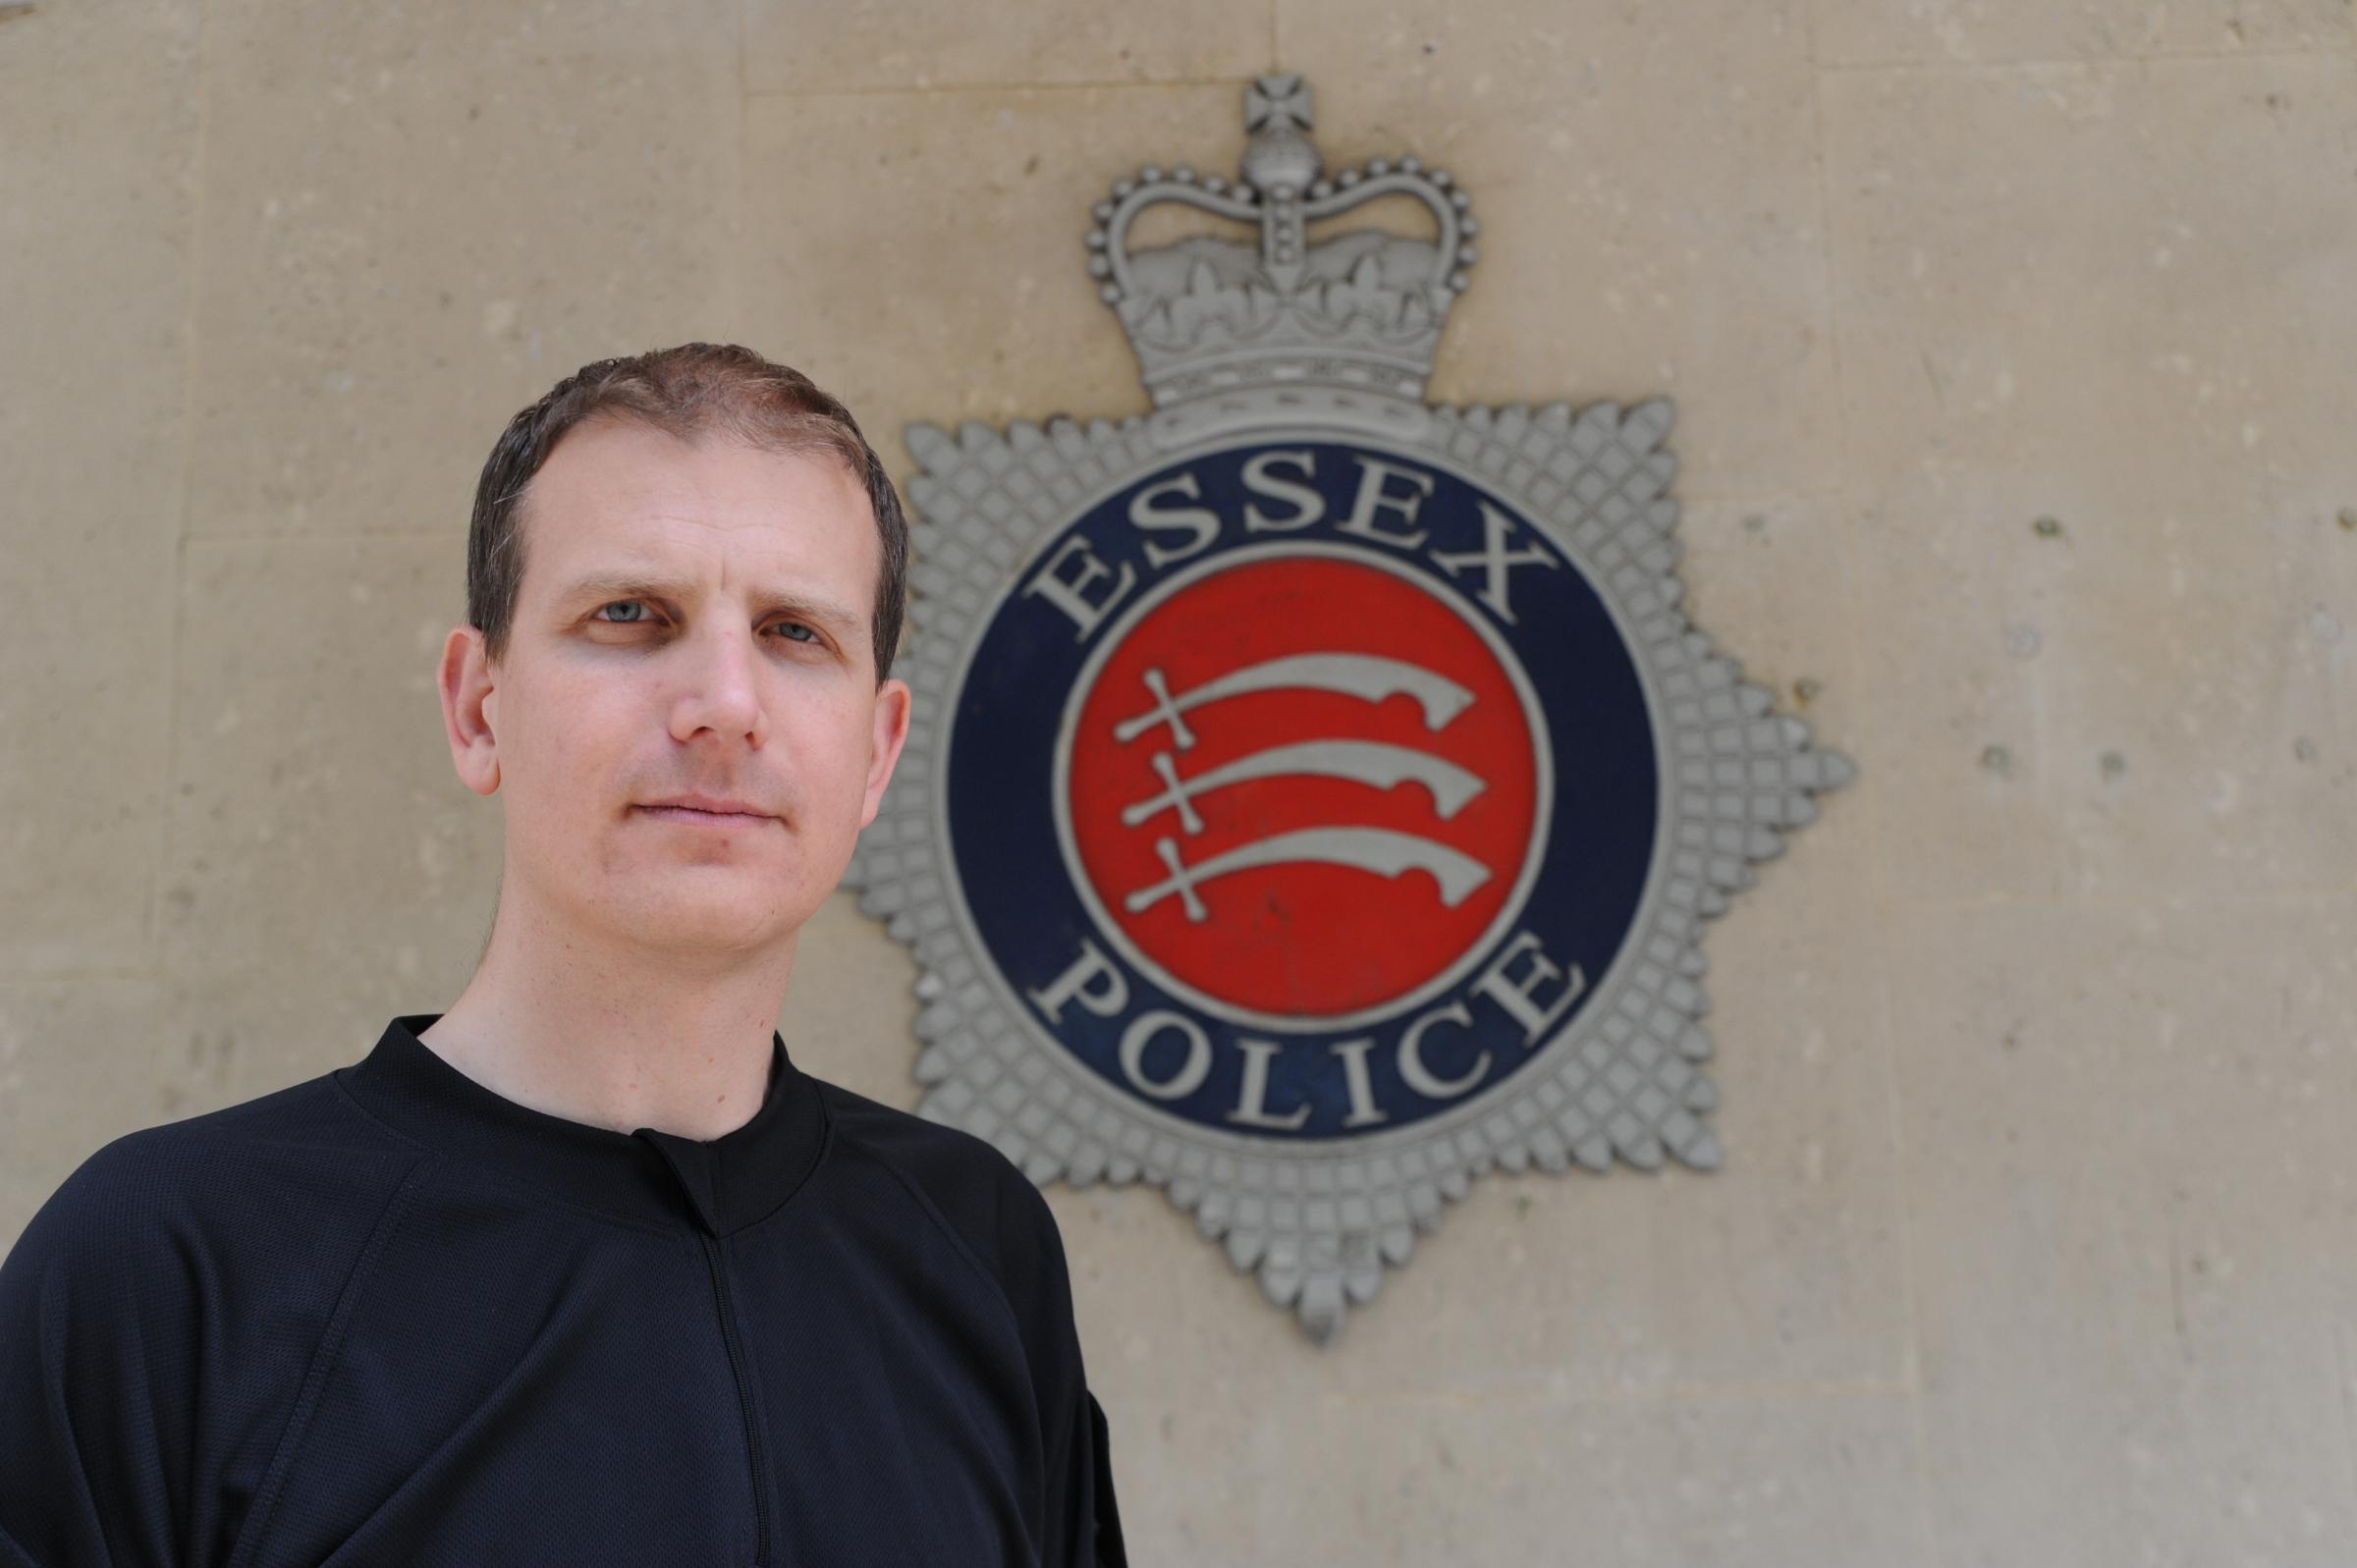 Chief inspector Simon Anslow, district commander for Southend